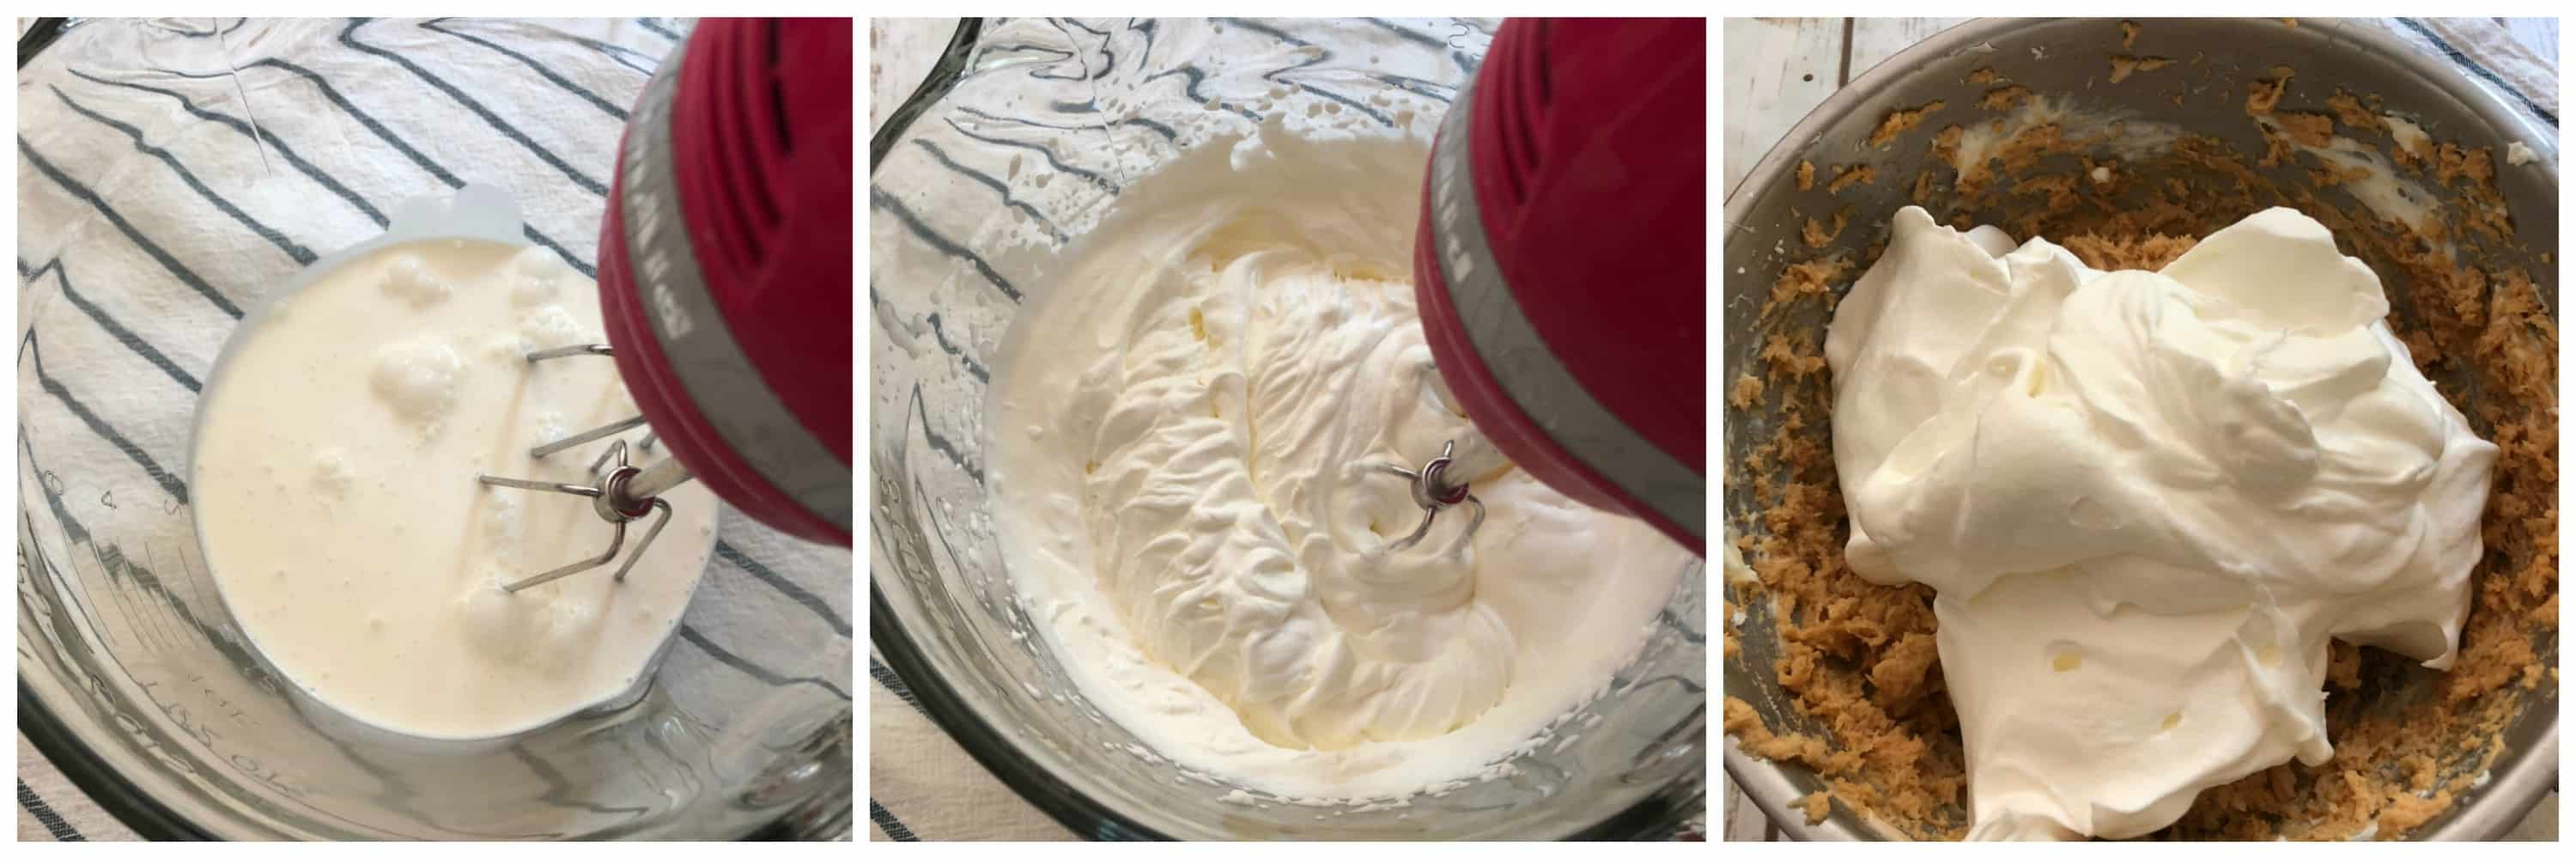 heavy cream being whipped and folded into peanut butter mixture